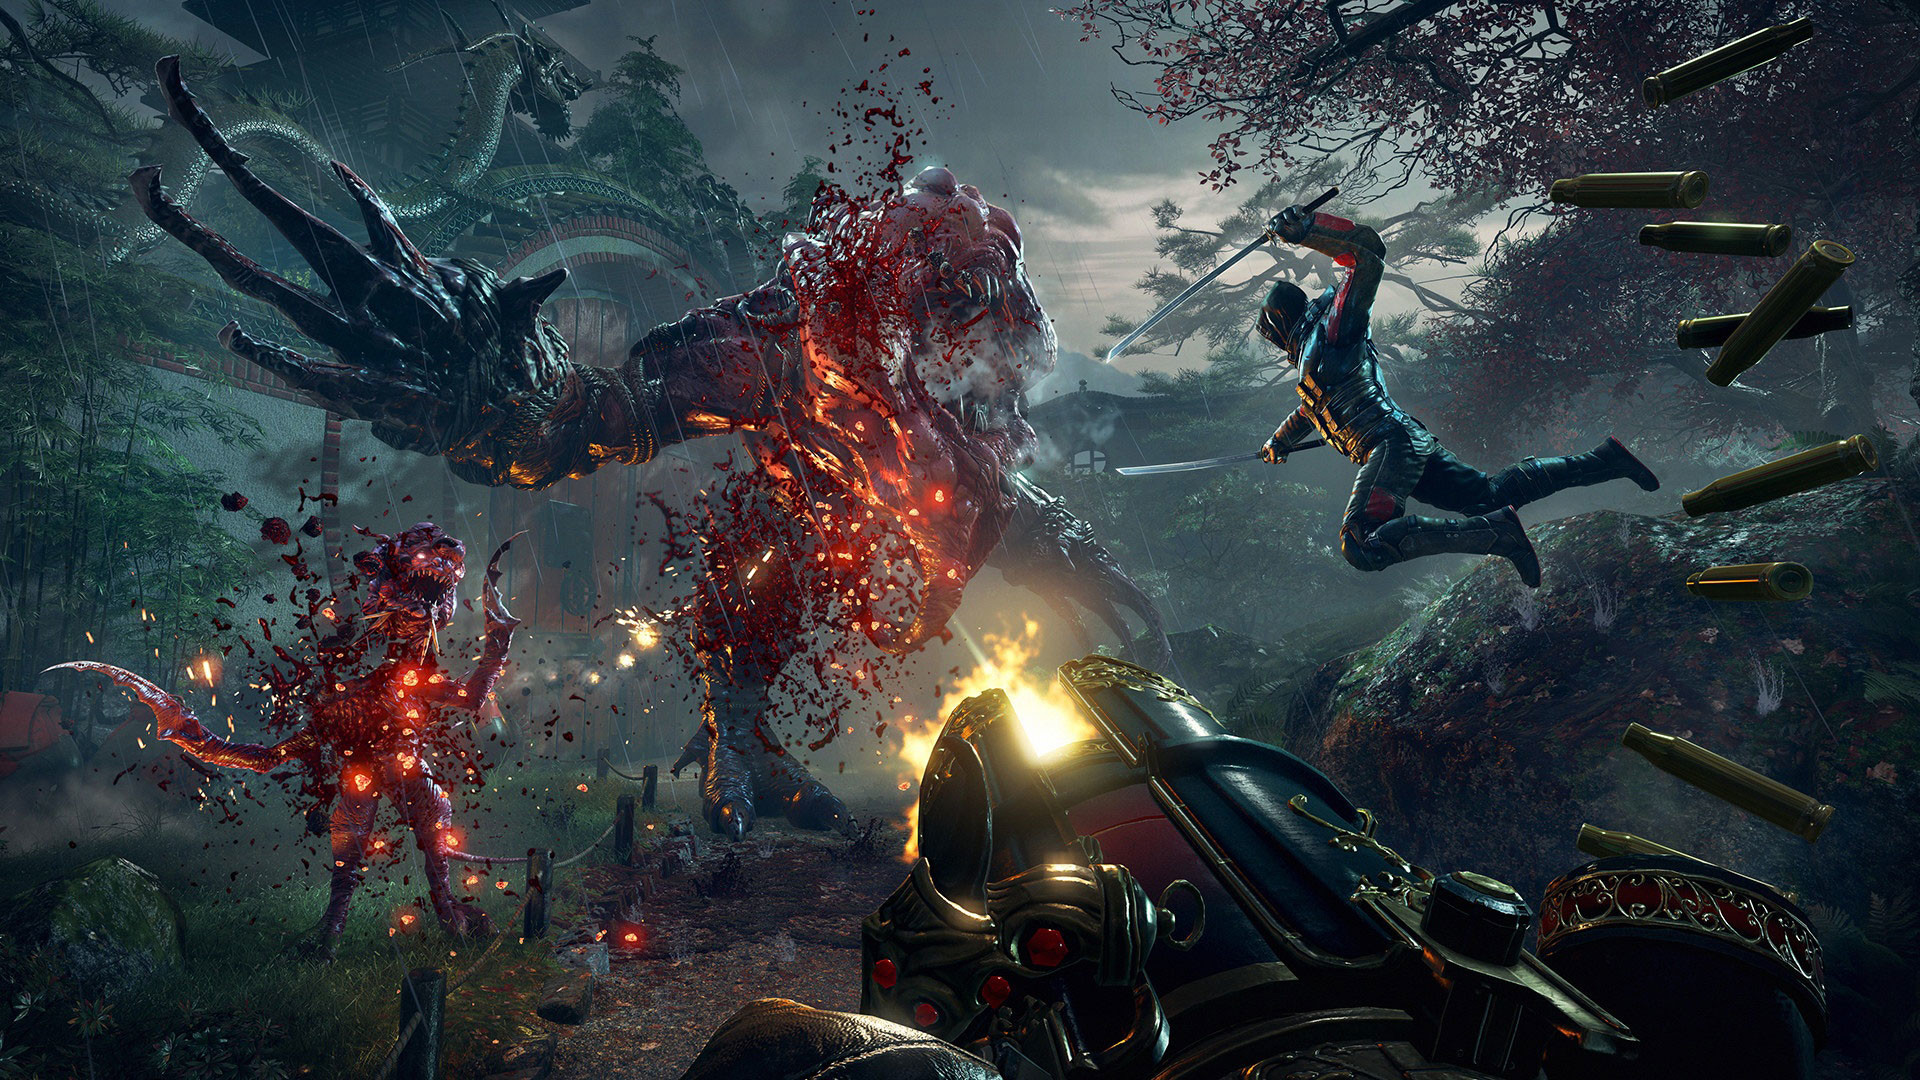 1920x1080 Shadow Warrior 2 4K Wallpaper | Shadow Warrior 2 1080p Wallpaper ...